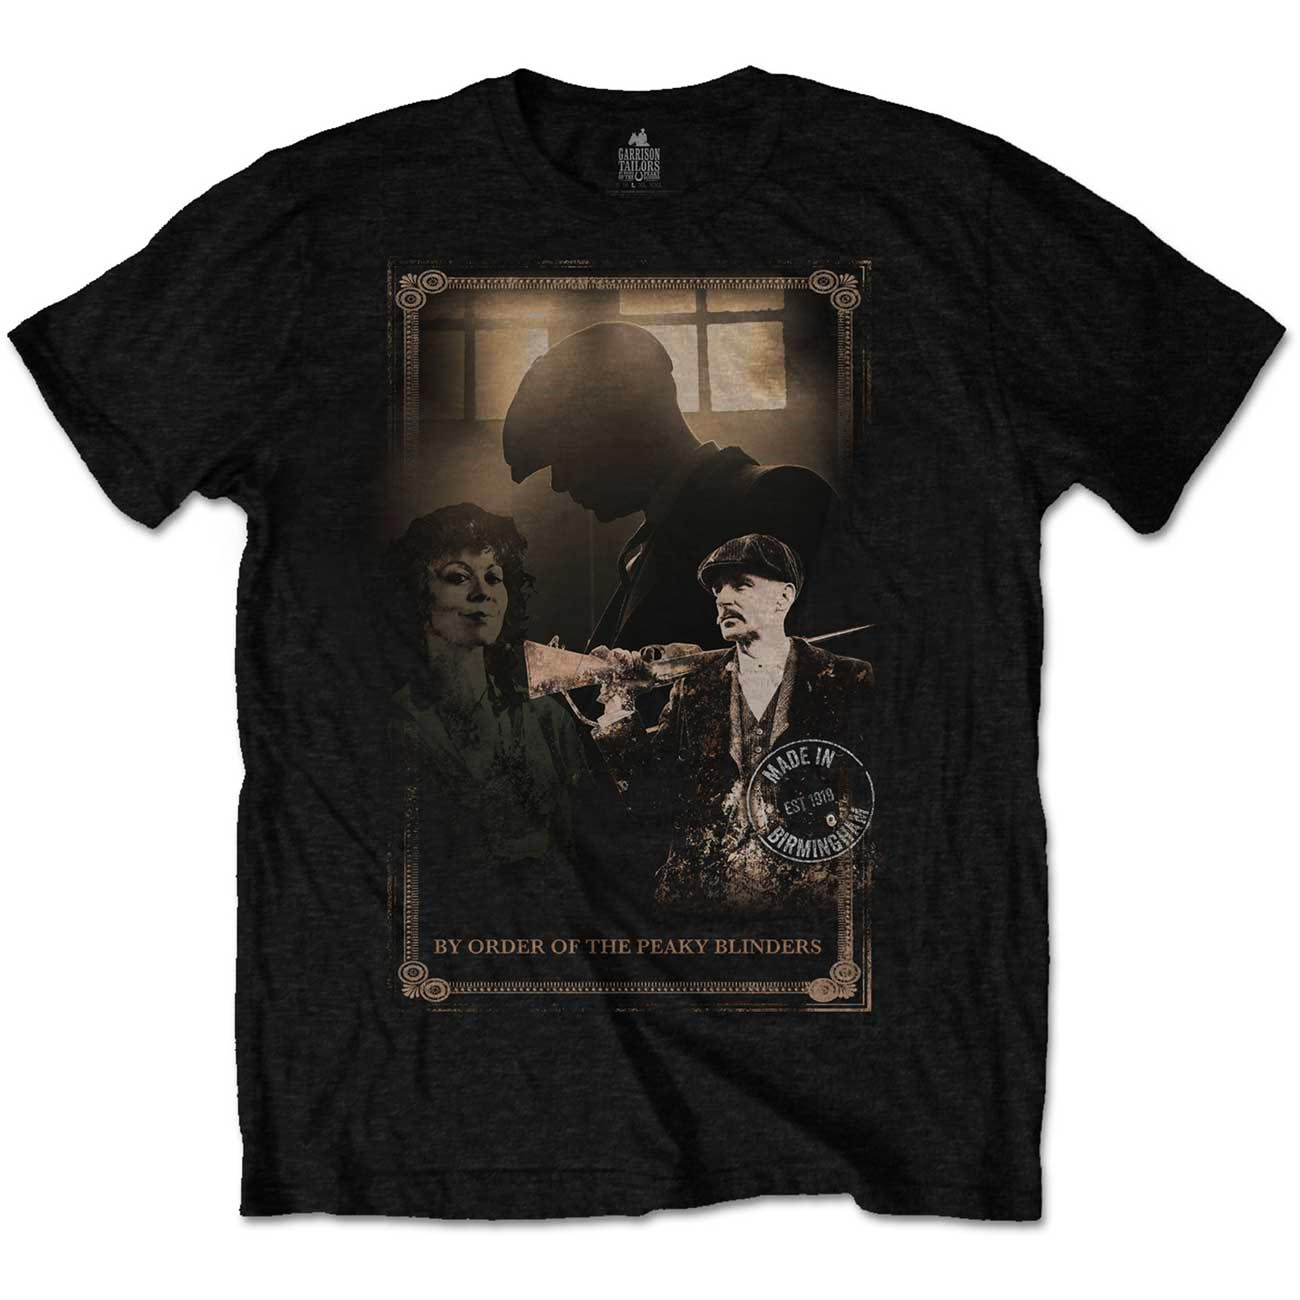 Official-T-Shirt-PEAKY-BLINDERS-Shelby-Brothers-039-Shotgun-039-Black-All-Sizes thumbnail 7